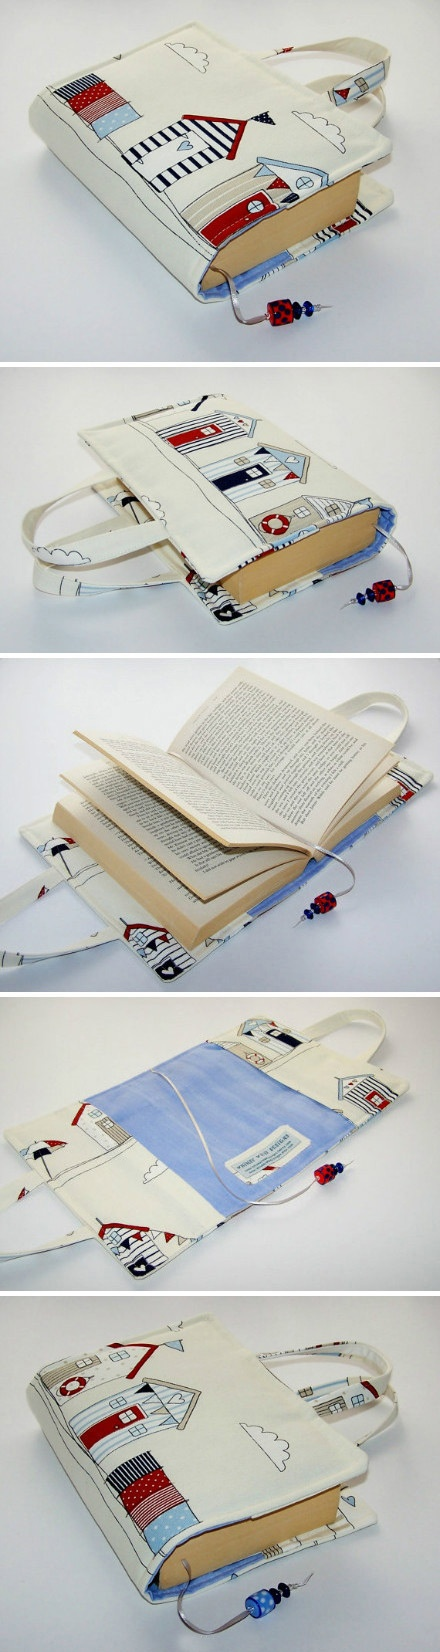 PHOTO DIY PART 2: This is to show using canvas and Sharpies can make a book cover with handles unique.